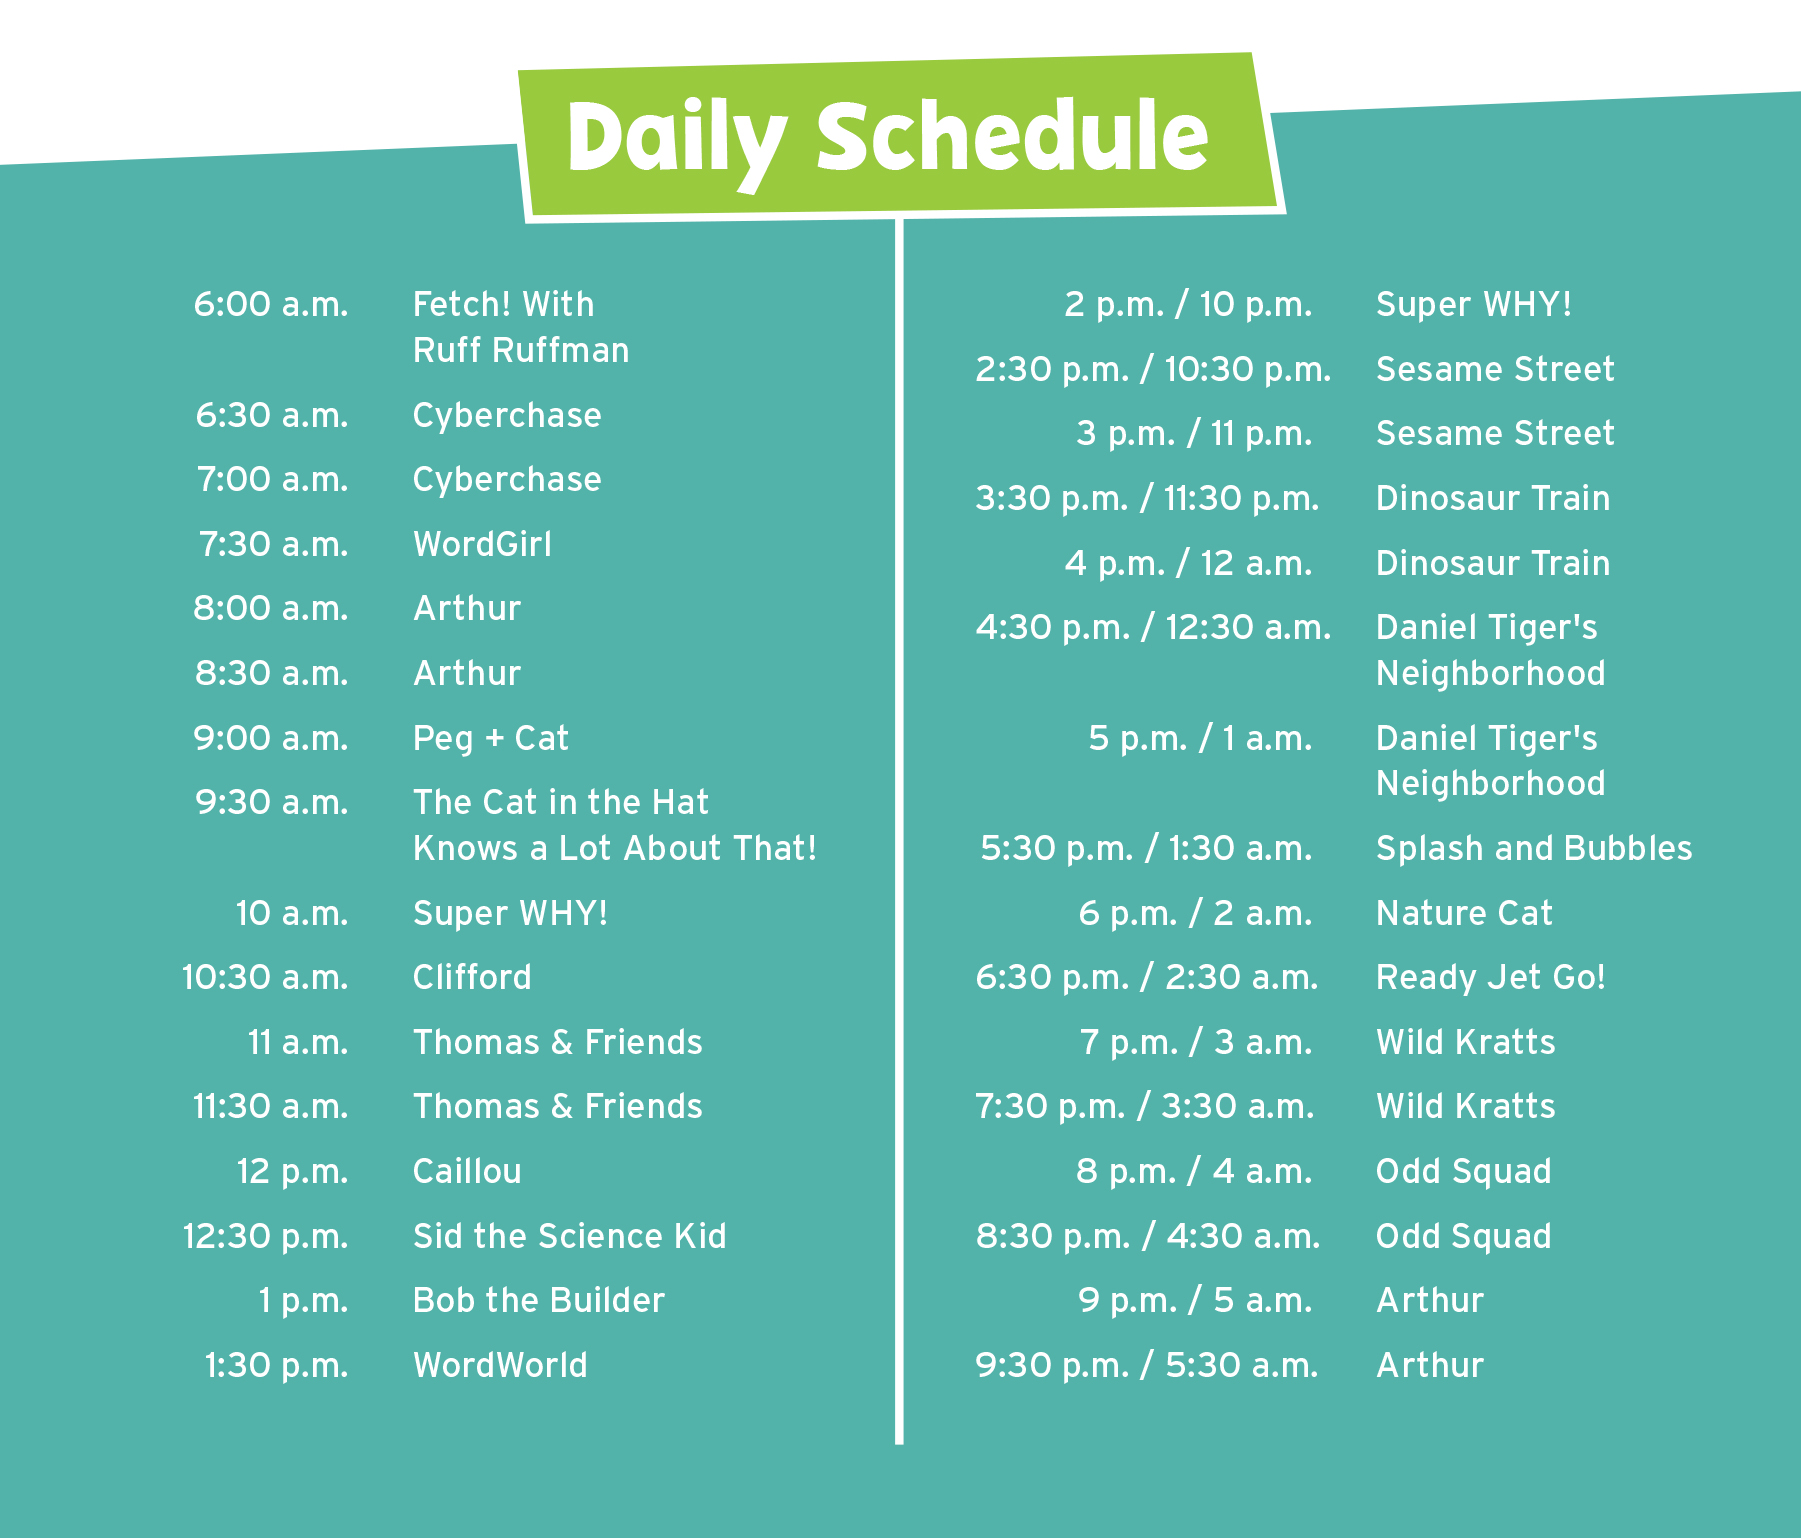 Blog edited to add: Interested in the WPT PBS KIDS 24/7 schedule? View it below!